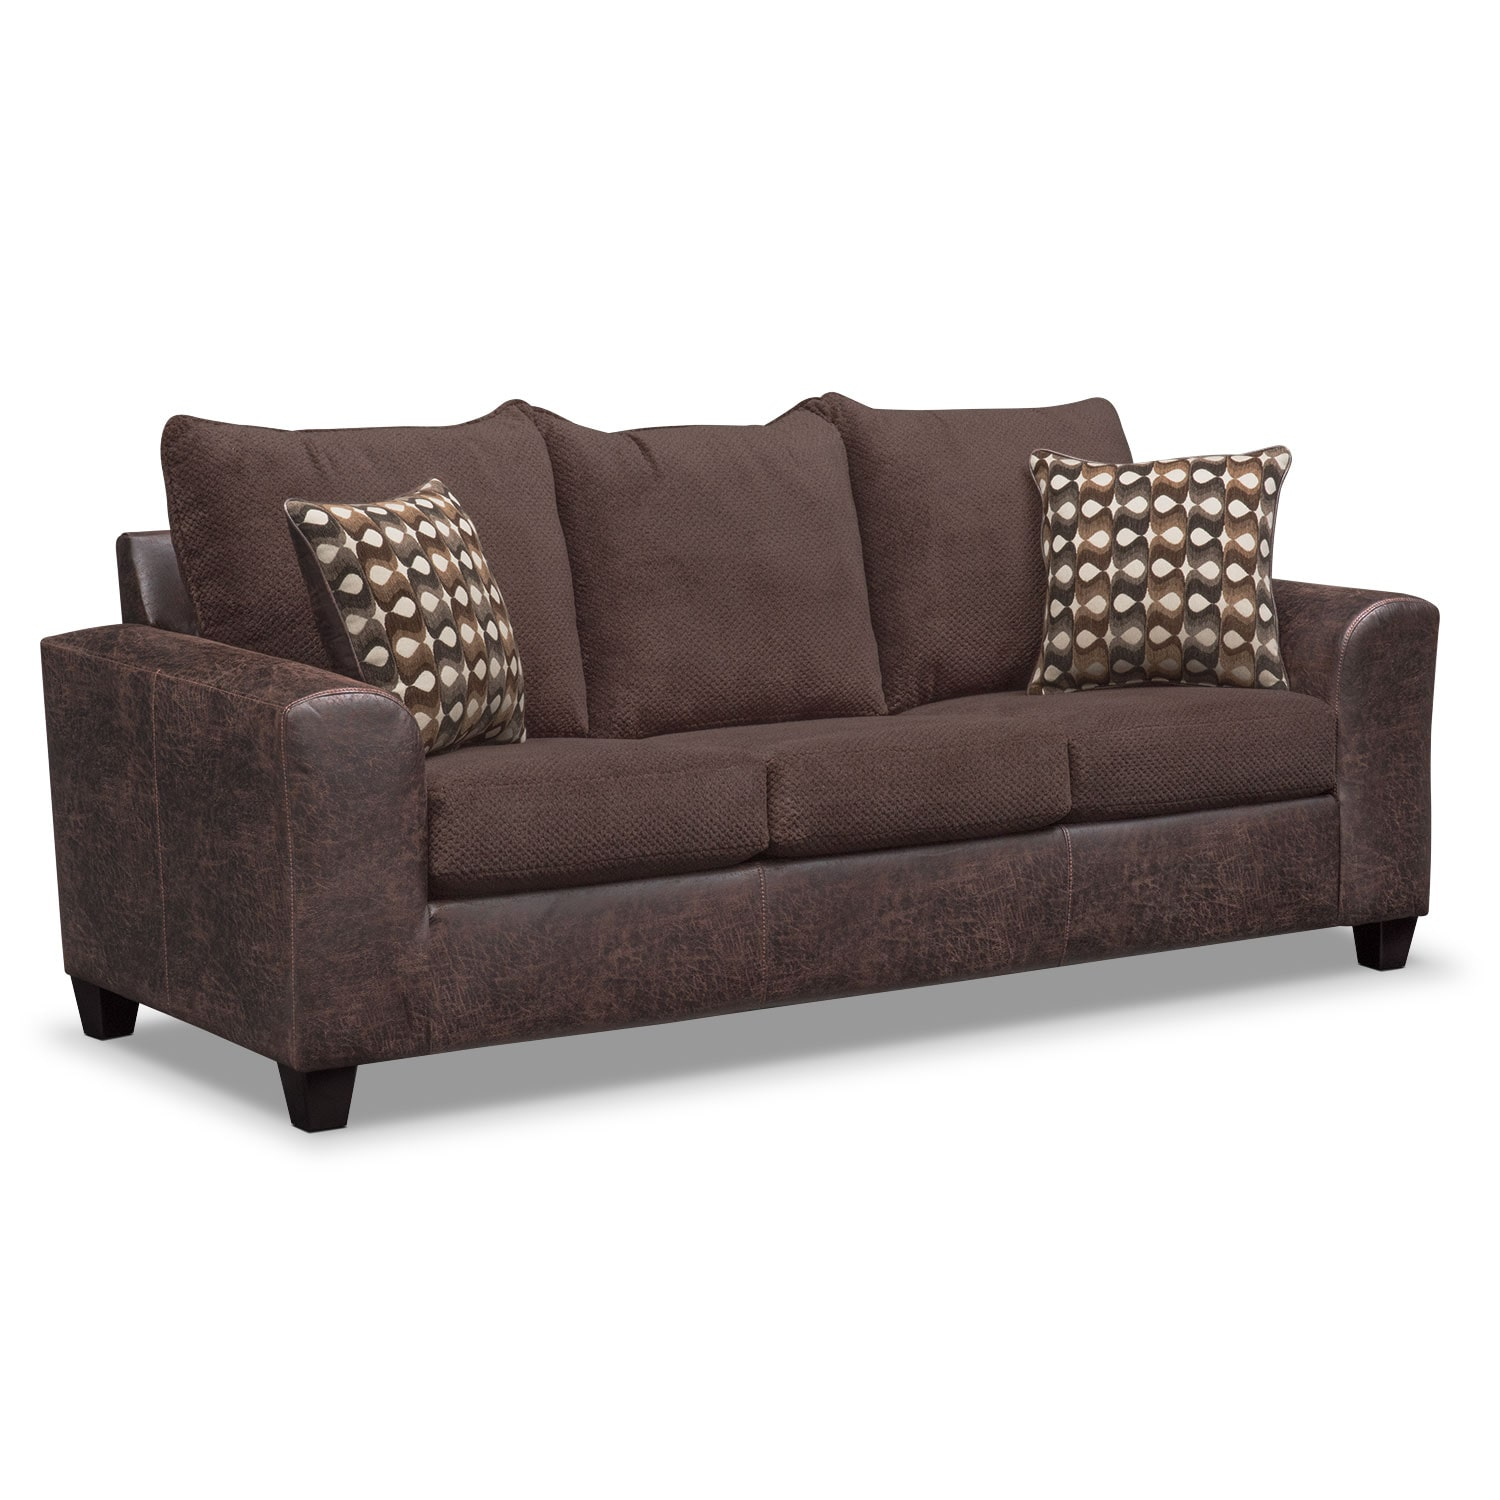 Brando Queen Innserspring Sleeper Sofa   Chocolate Part 88